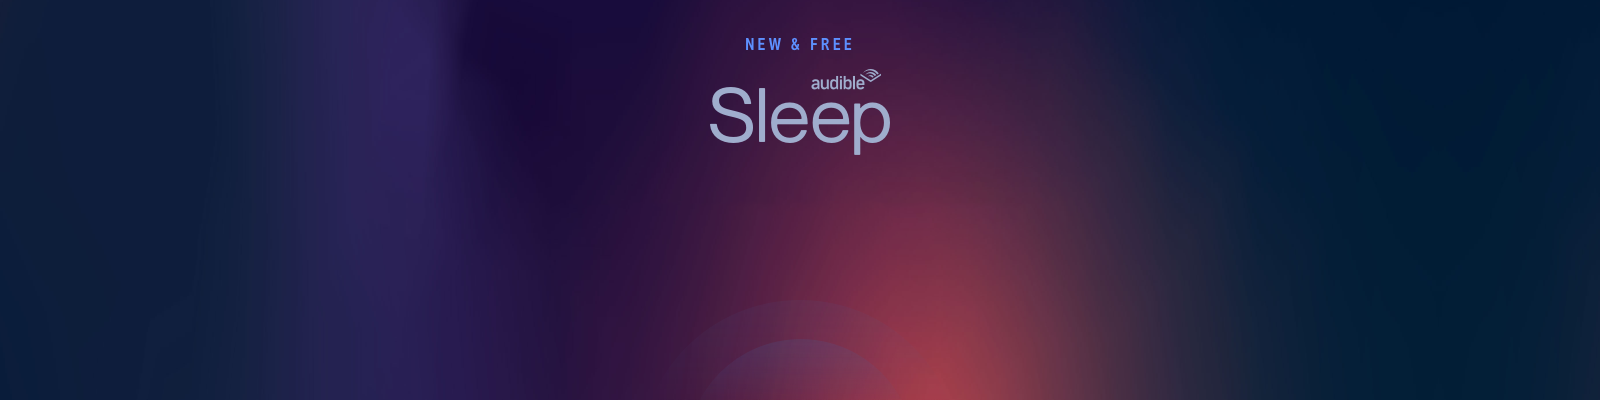 Audible Sleep. A good night's sleep is essential for keeping our minds and bodies strong, but it's not always an easy thing to get—especially now. To help, we've created a collection of audio experiences designed to invite relaxation and sleep. The taster collection below is available for free to both Audible members and non-members.